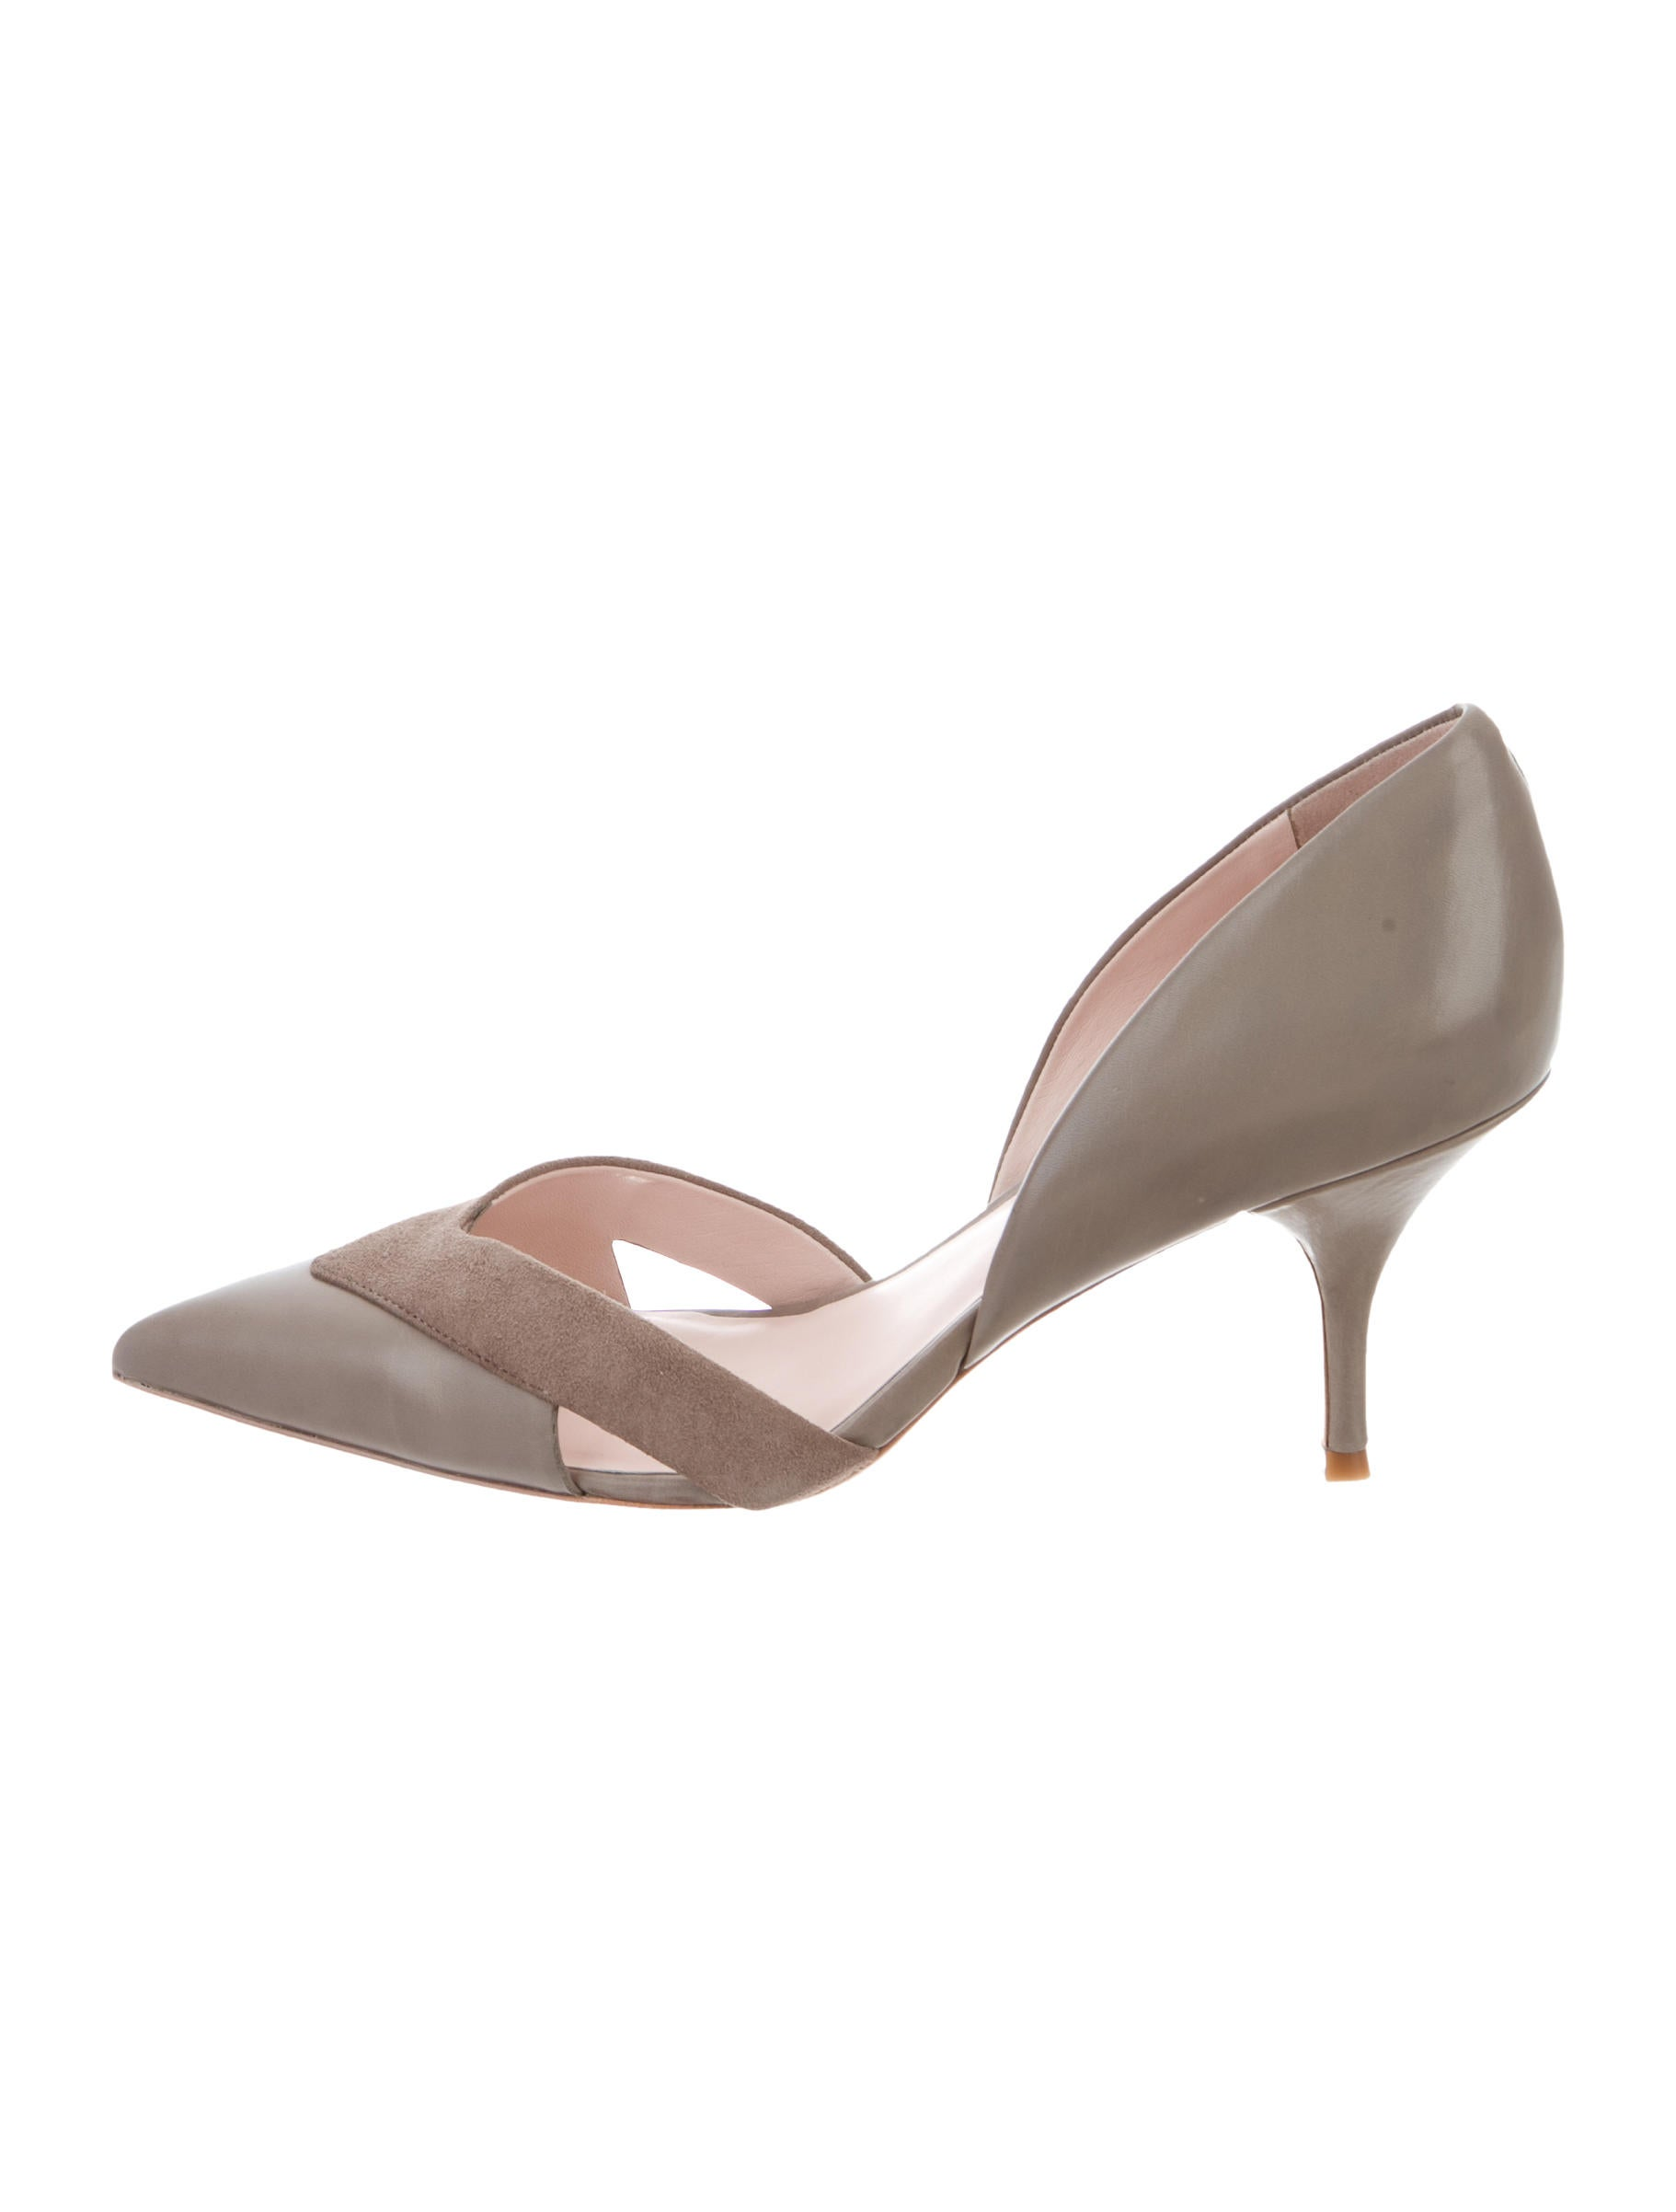 quality from china wholesale AERIN Elaina Pointed-Toe Pumps w/ Tags sale visit new for nice very cheap sale online discount in China ZGdaIDn0G